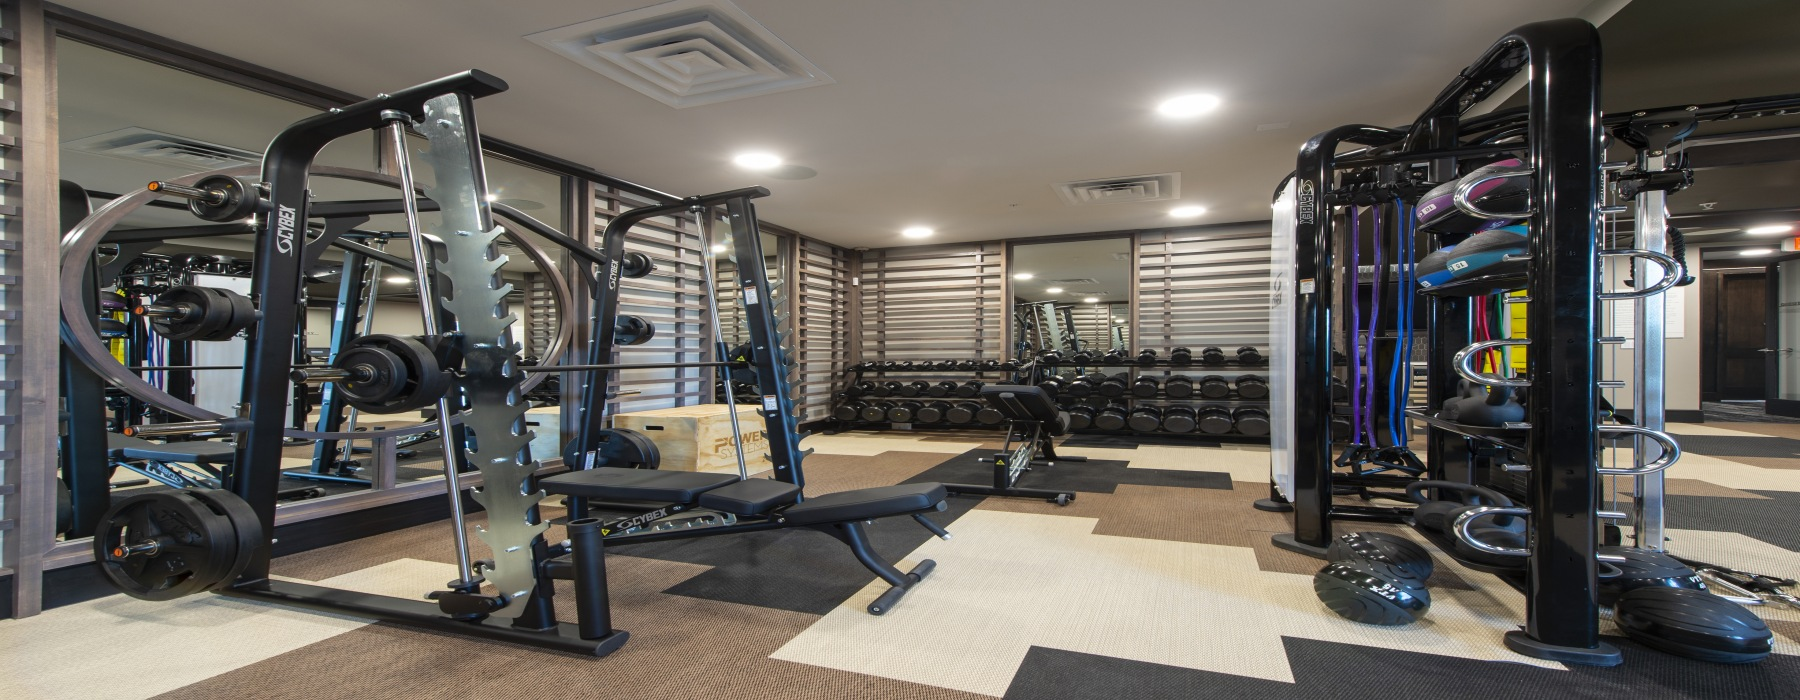 Gym with strength equipment